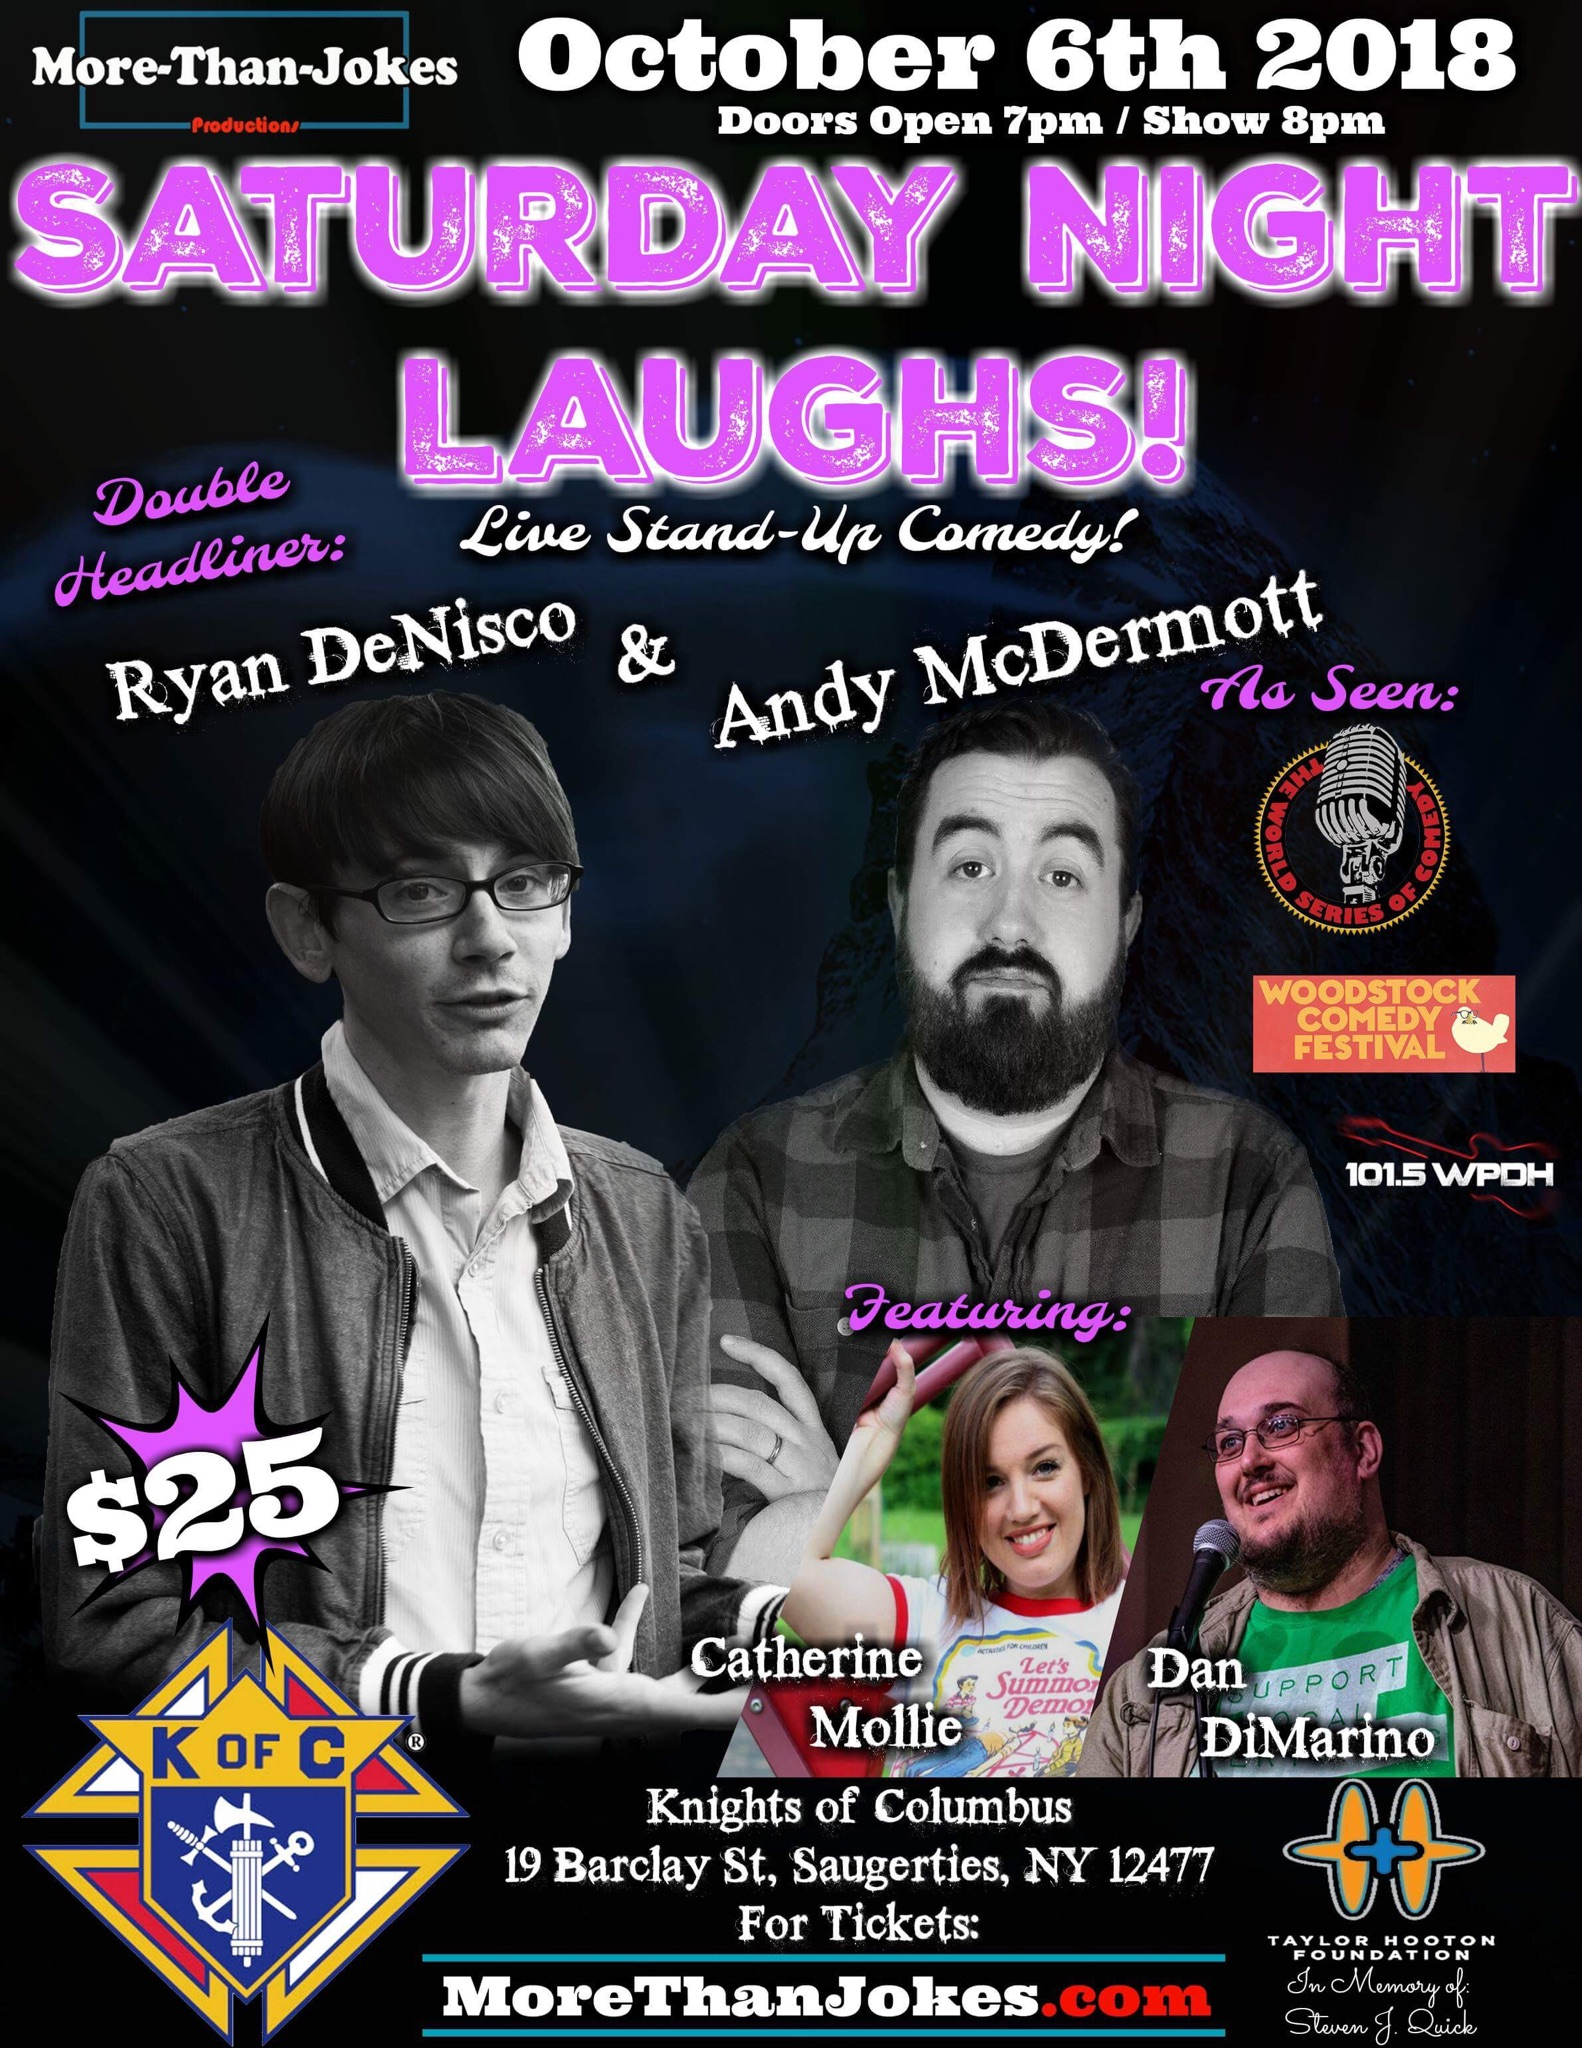 Quick organized a stand-up comedy event featuring comedians Ryan DeNisco and Andy McDermott to raise money for the Taylor Hooton Foundation.